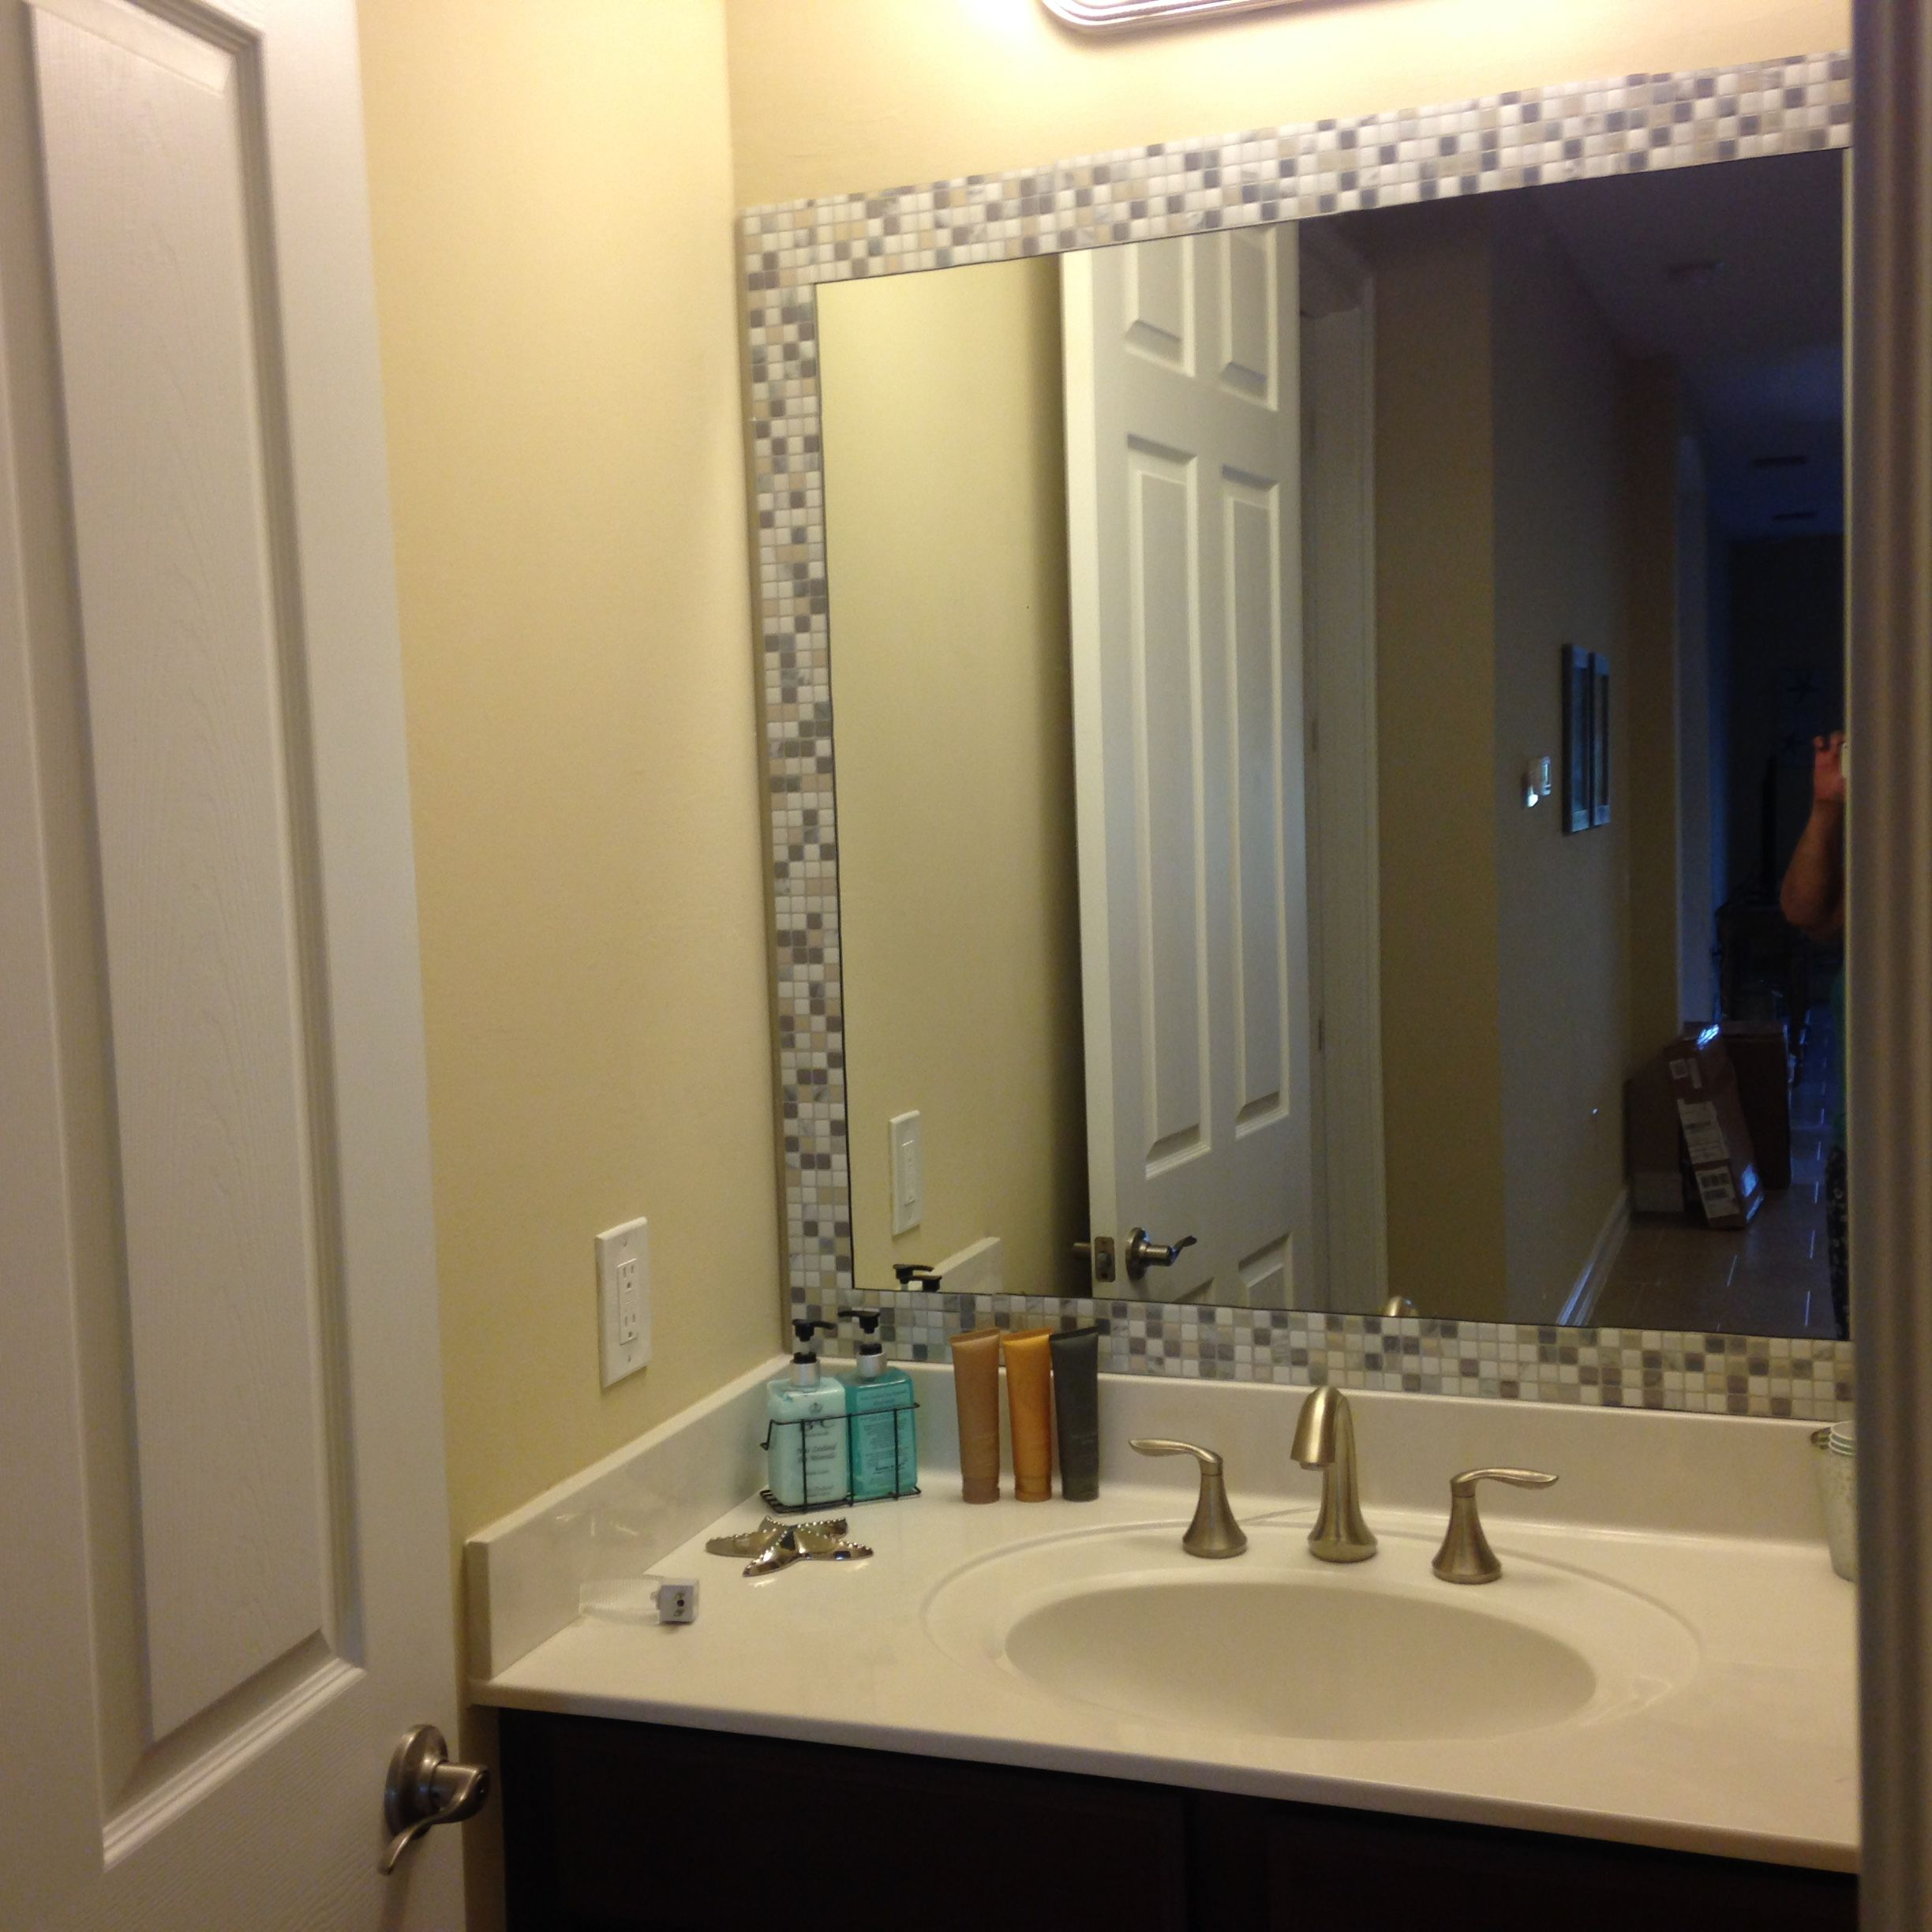 Beveled Mirror Trim Kits Take Self Adhesive Tiles Bought From Homedepot And Add